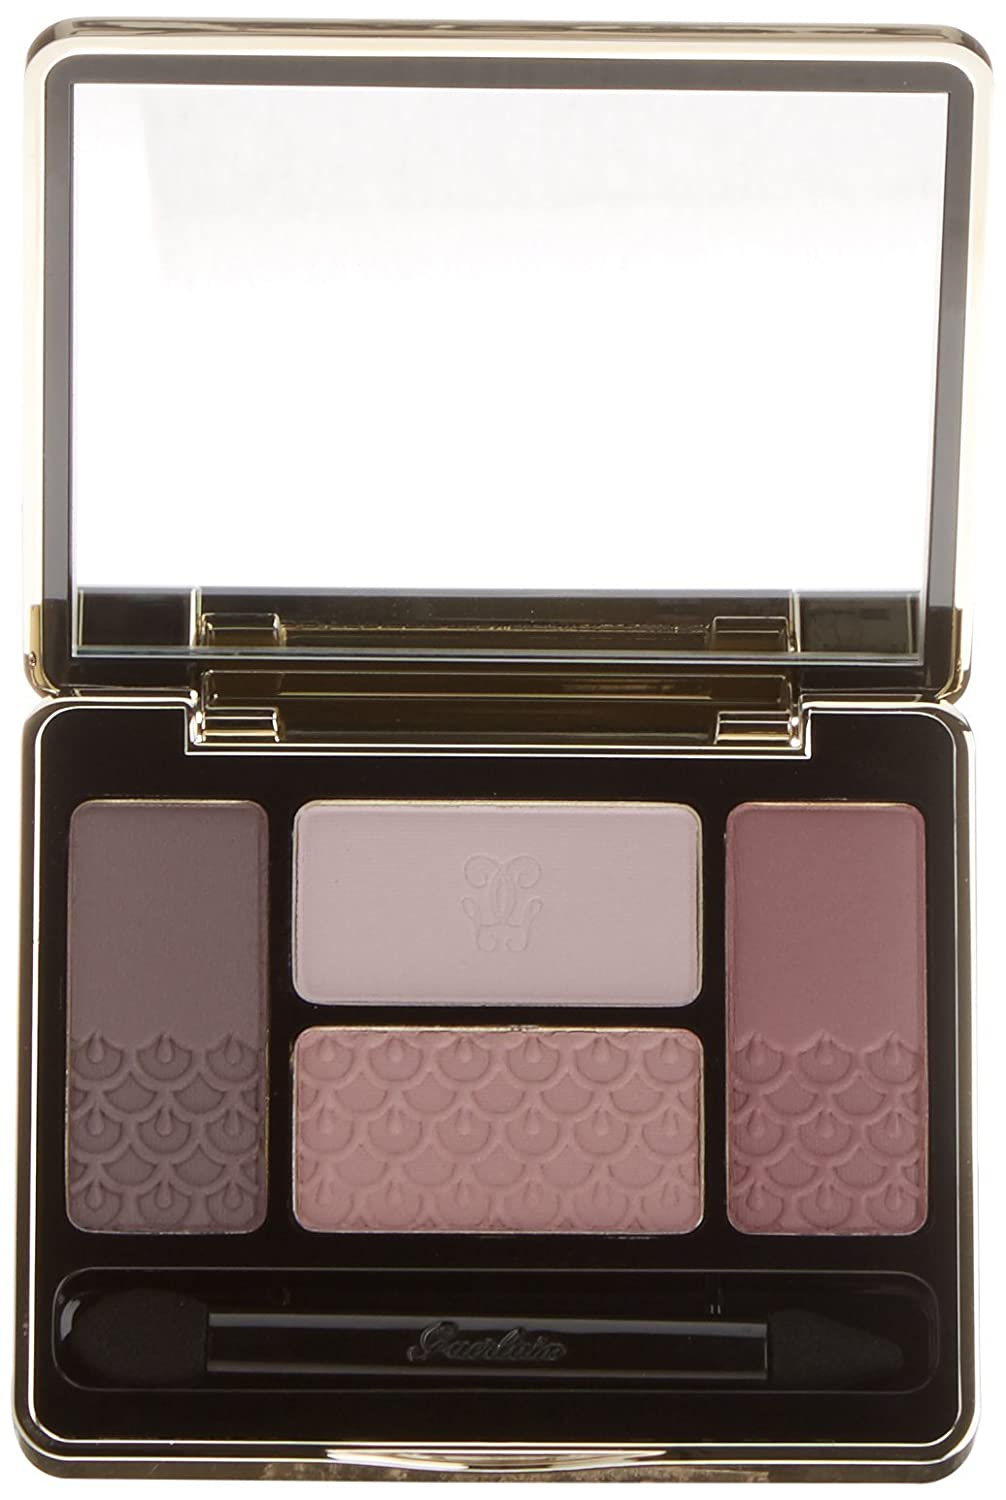 Guerlain Ecrin 4 Couleurs Eye Shadow for Women, Palette No. 17 Les Violines, 0.25 Ounce